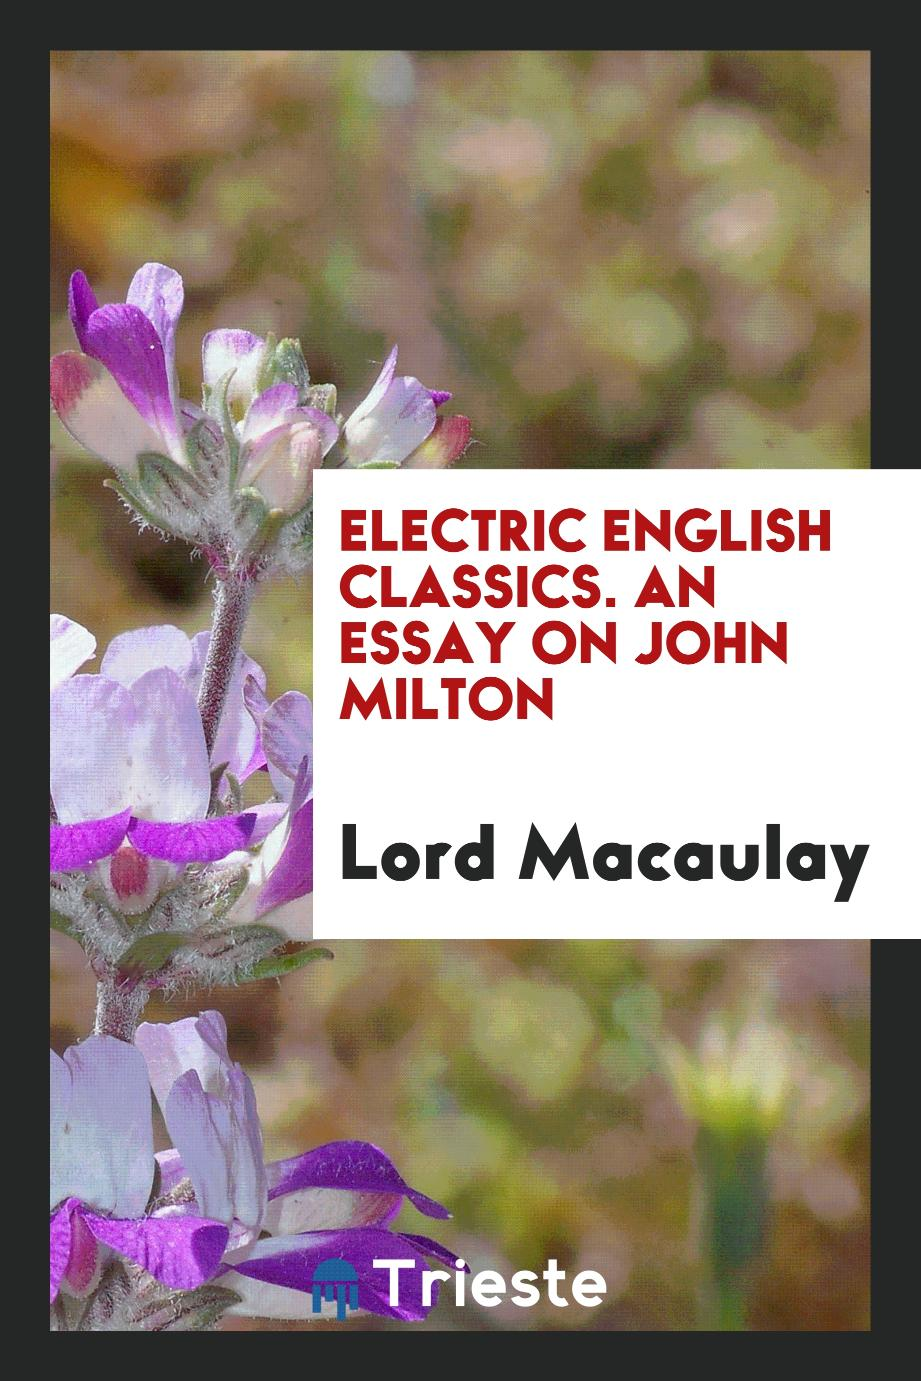 essay on john milton Research john milton, the english poet, pamphleteer and historian who wrote the epic poem paradise lost, on biographycom john milton is best known for paradise lost, widely regarded as the greatest epic poem in english together with paradise regained, it formed his reputation as one of.